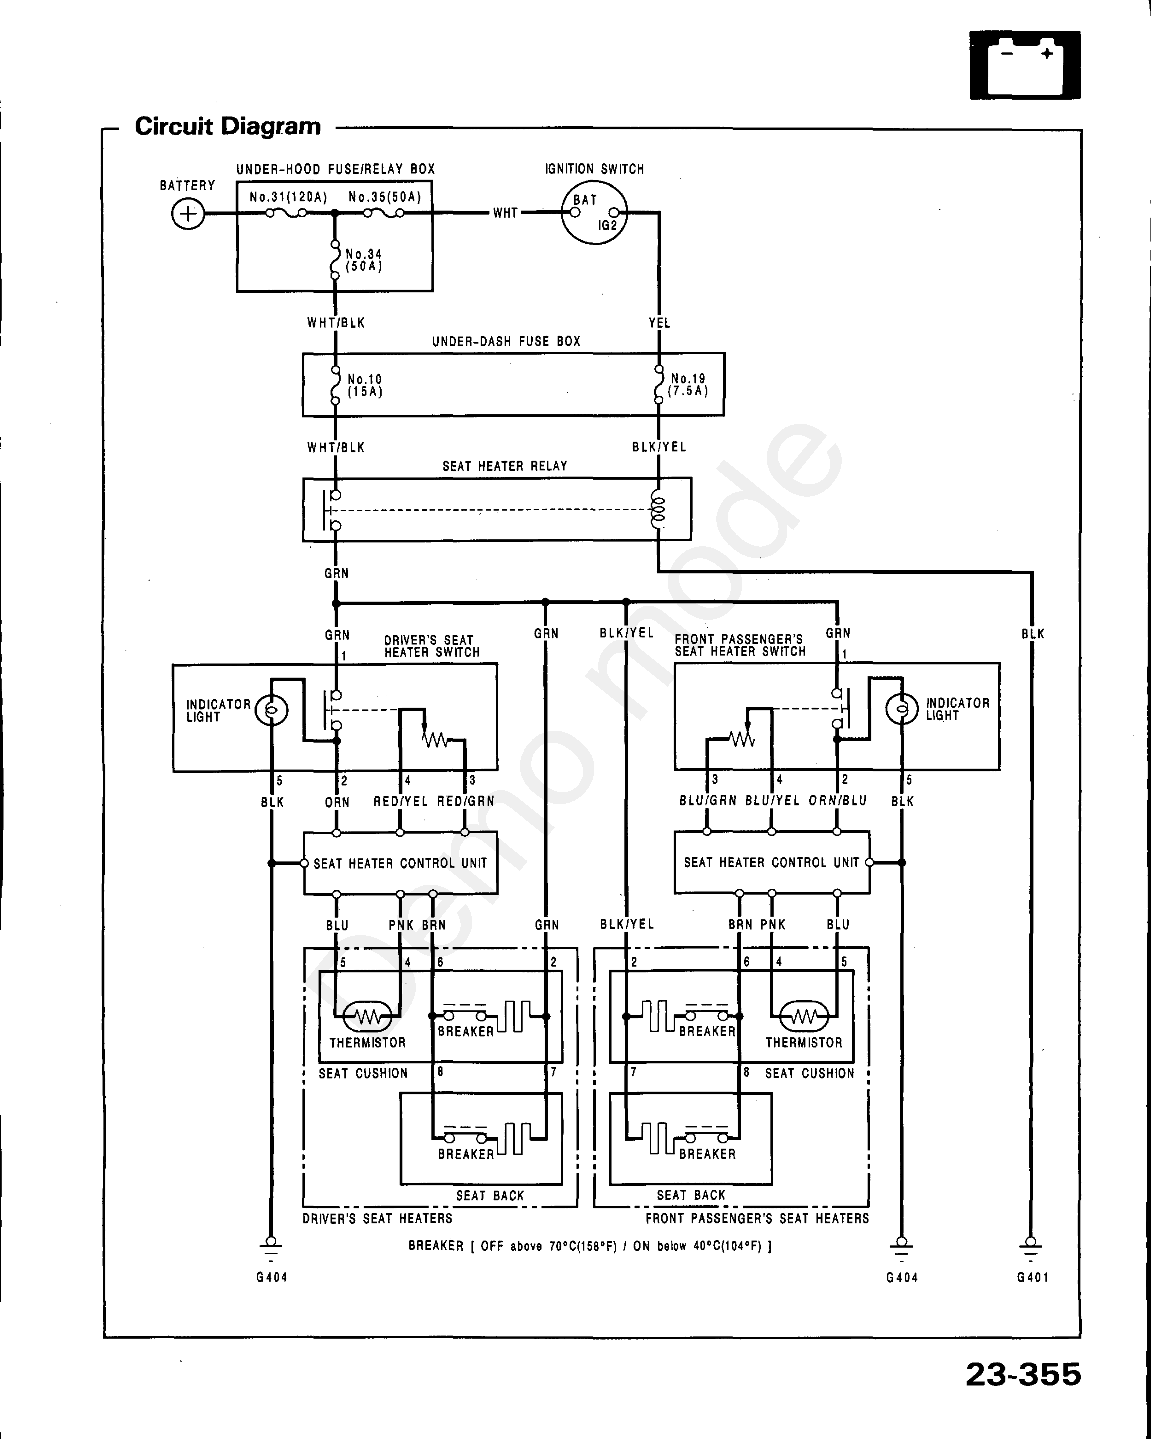 Acura Legend Radio Wiring Library Dayton 1tmy3 110 Volt Diagram Related Imag Es To For 1991